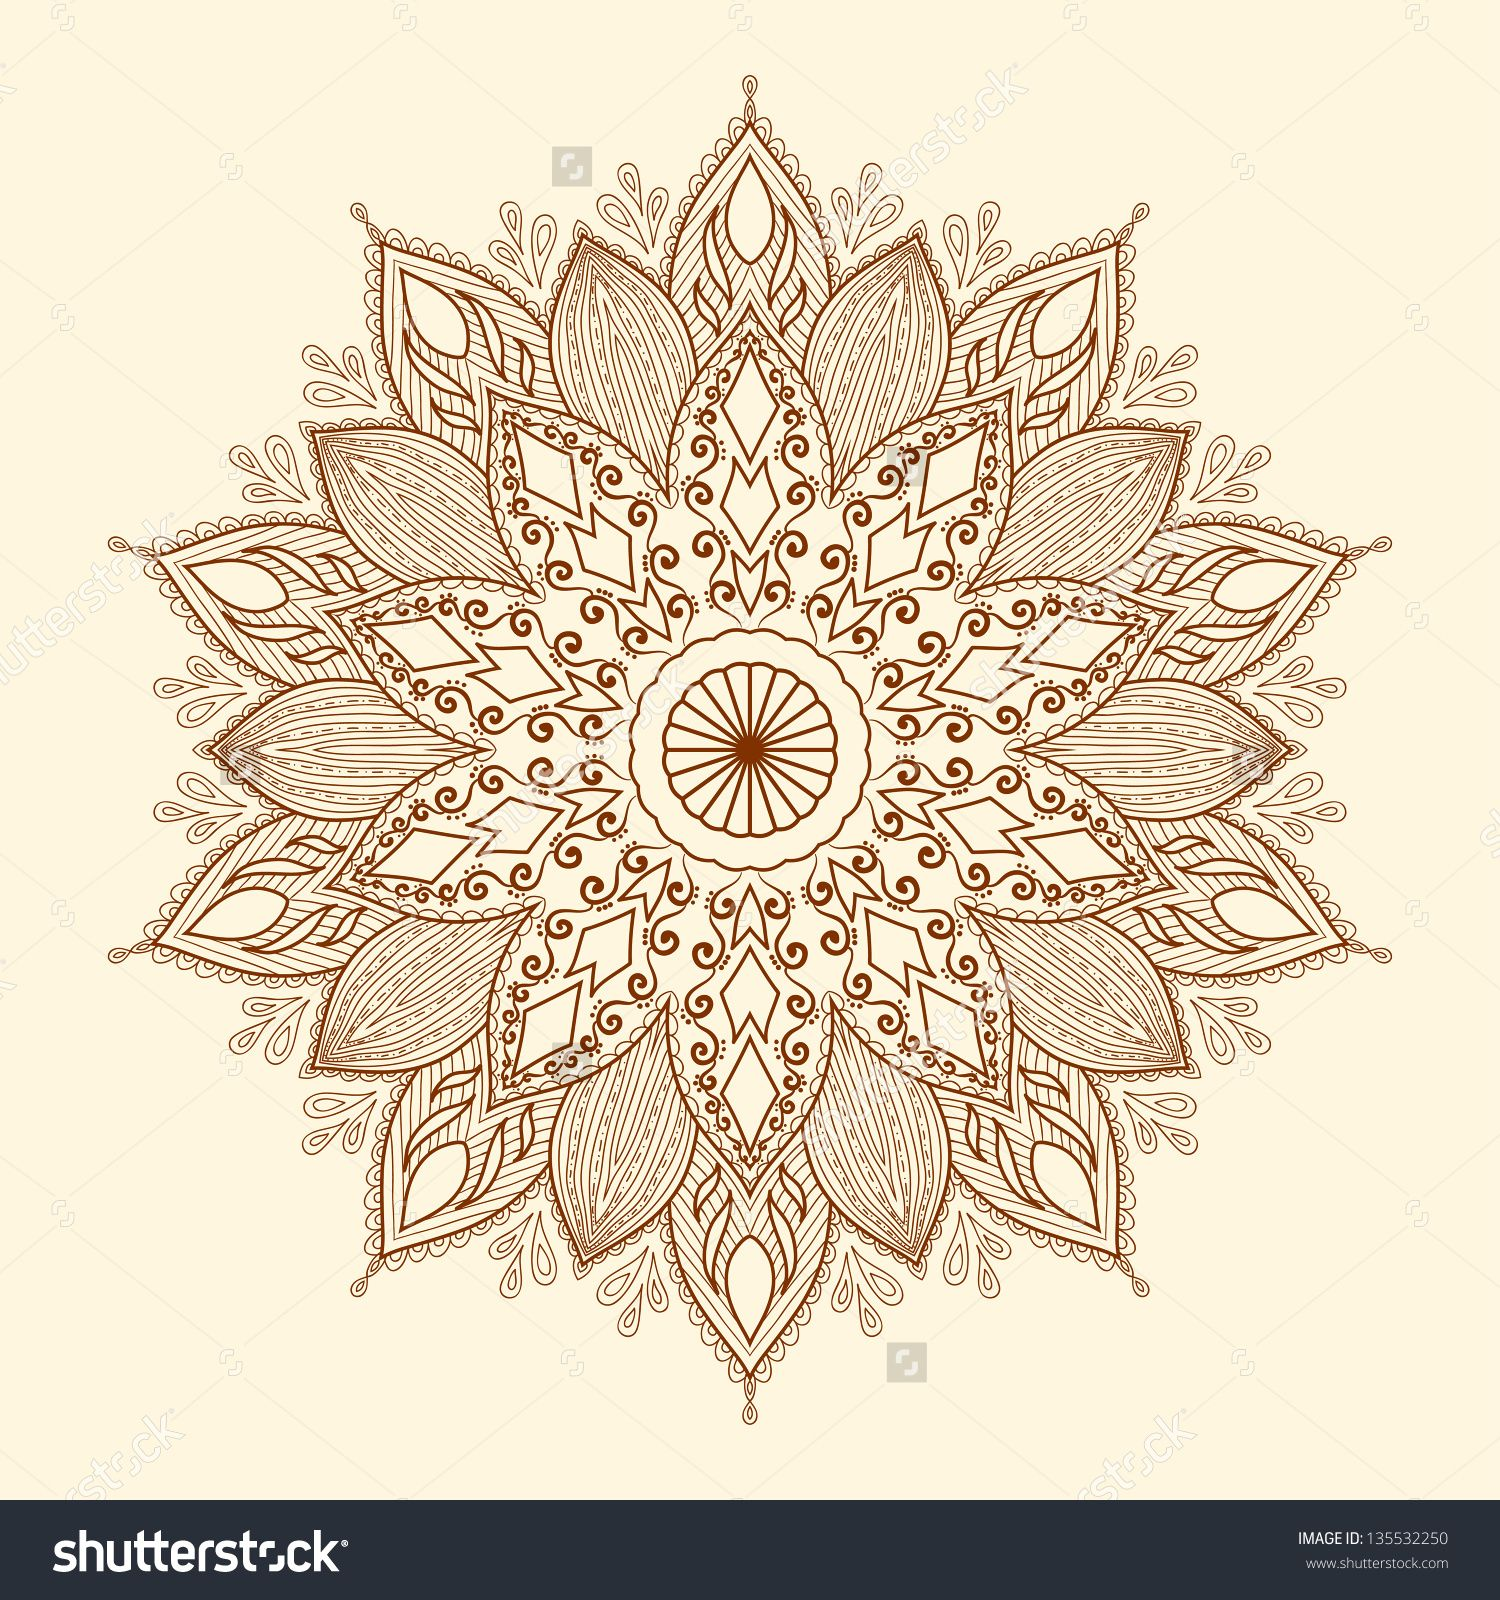 8bee8c4b4 Mandala dahlia tattoo designs (oranges, pinks, and yellows) | Art ...